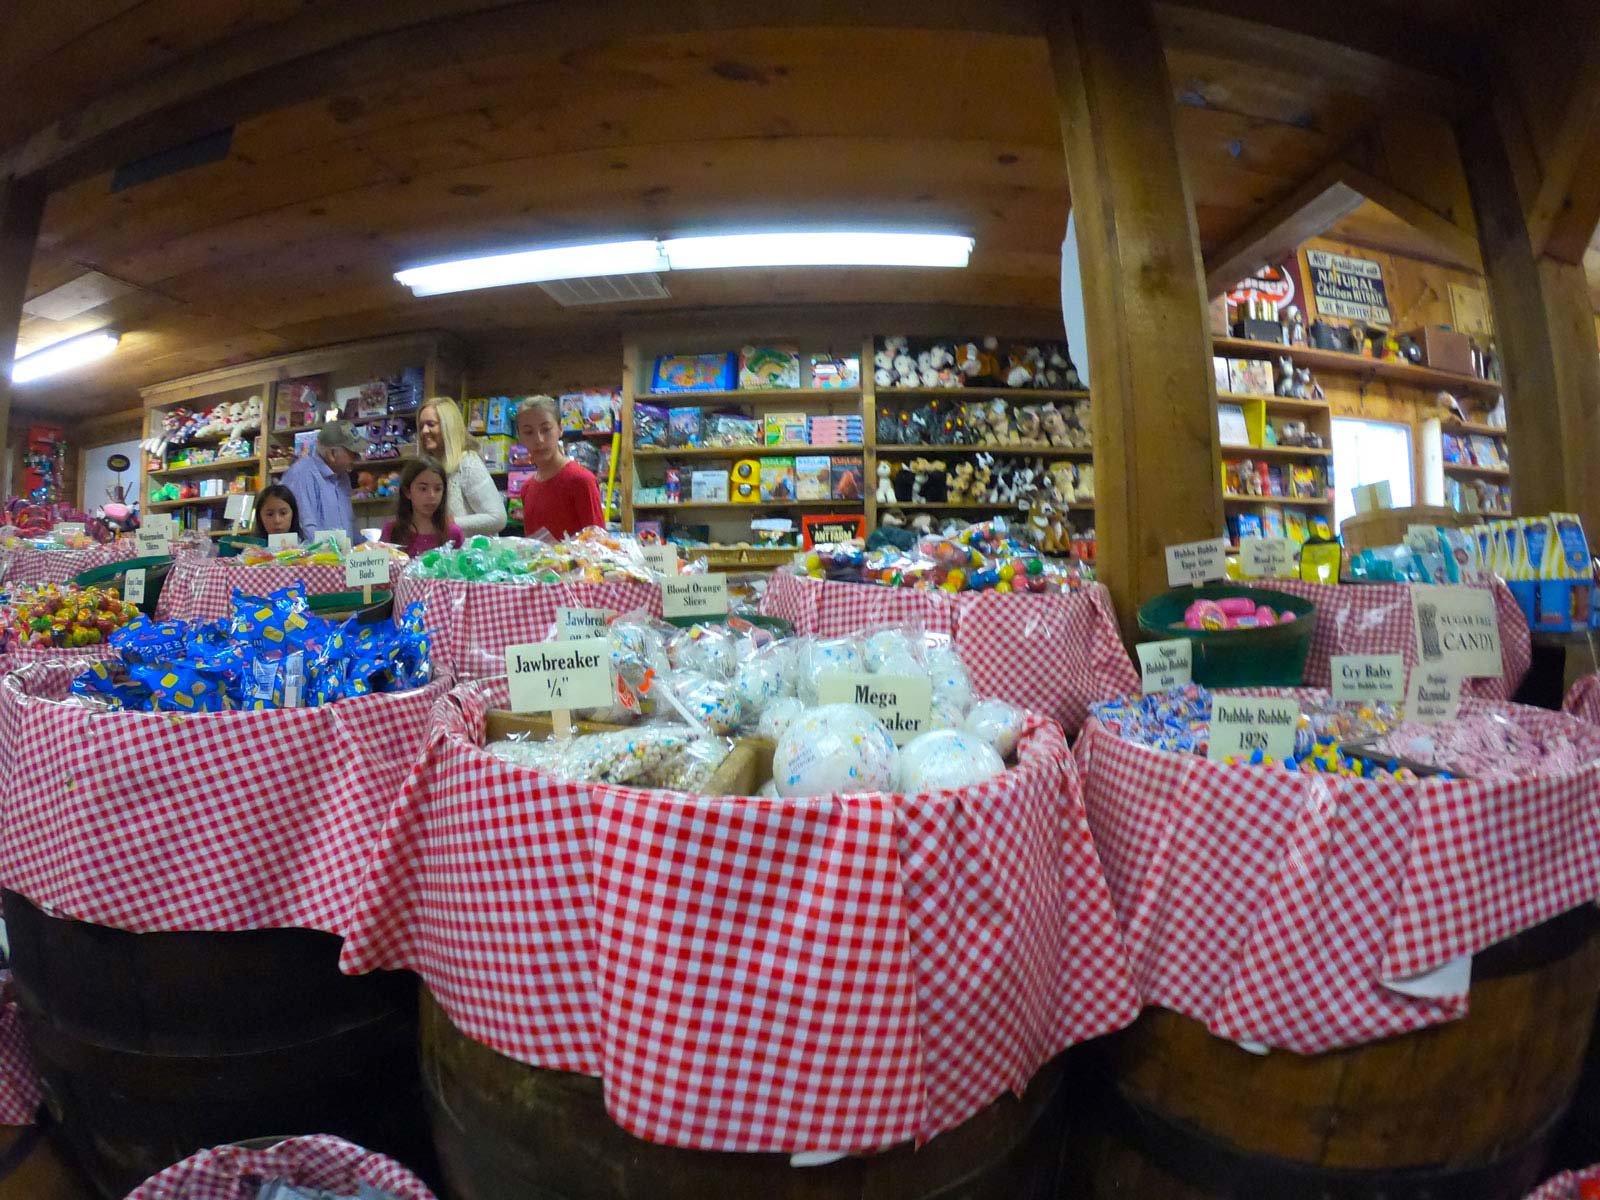 Candy counter at the Mast General Store Annex in Valle Crucis, North Carolina